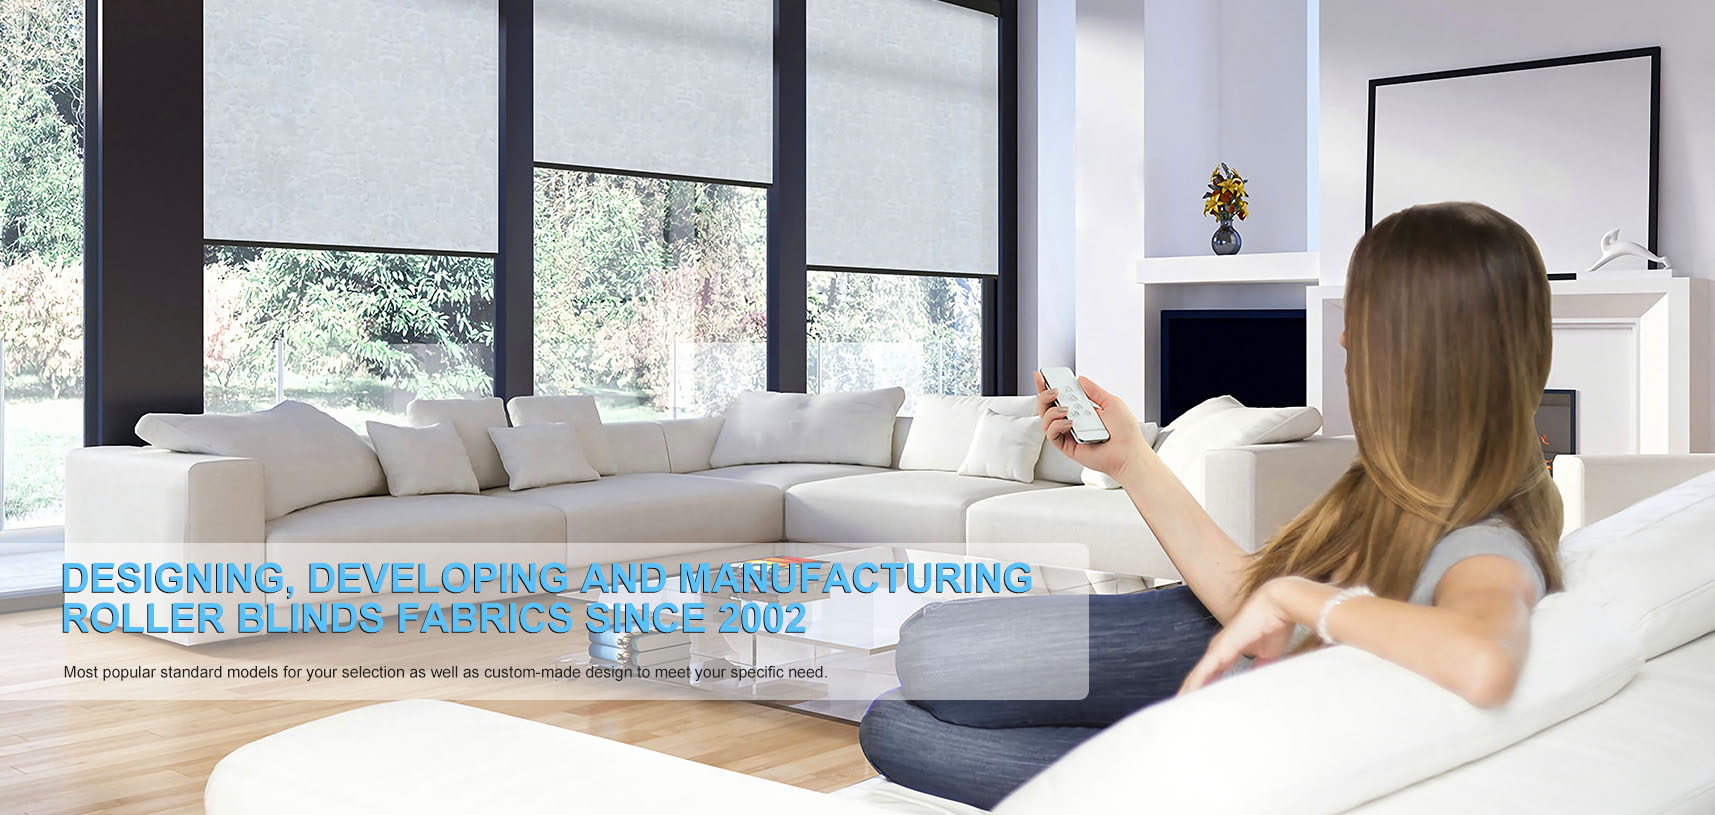 Designing, developing and manufacturing roller blinds fabrics since 2002